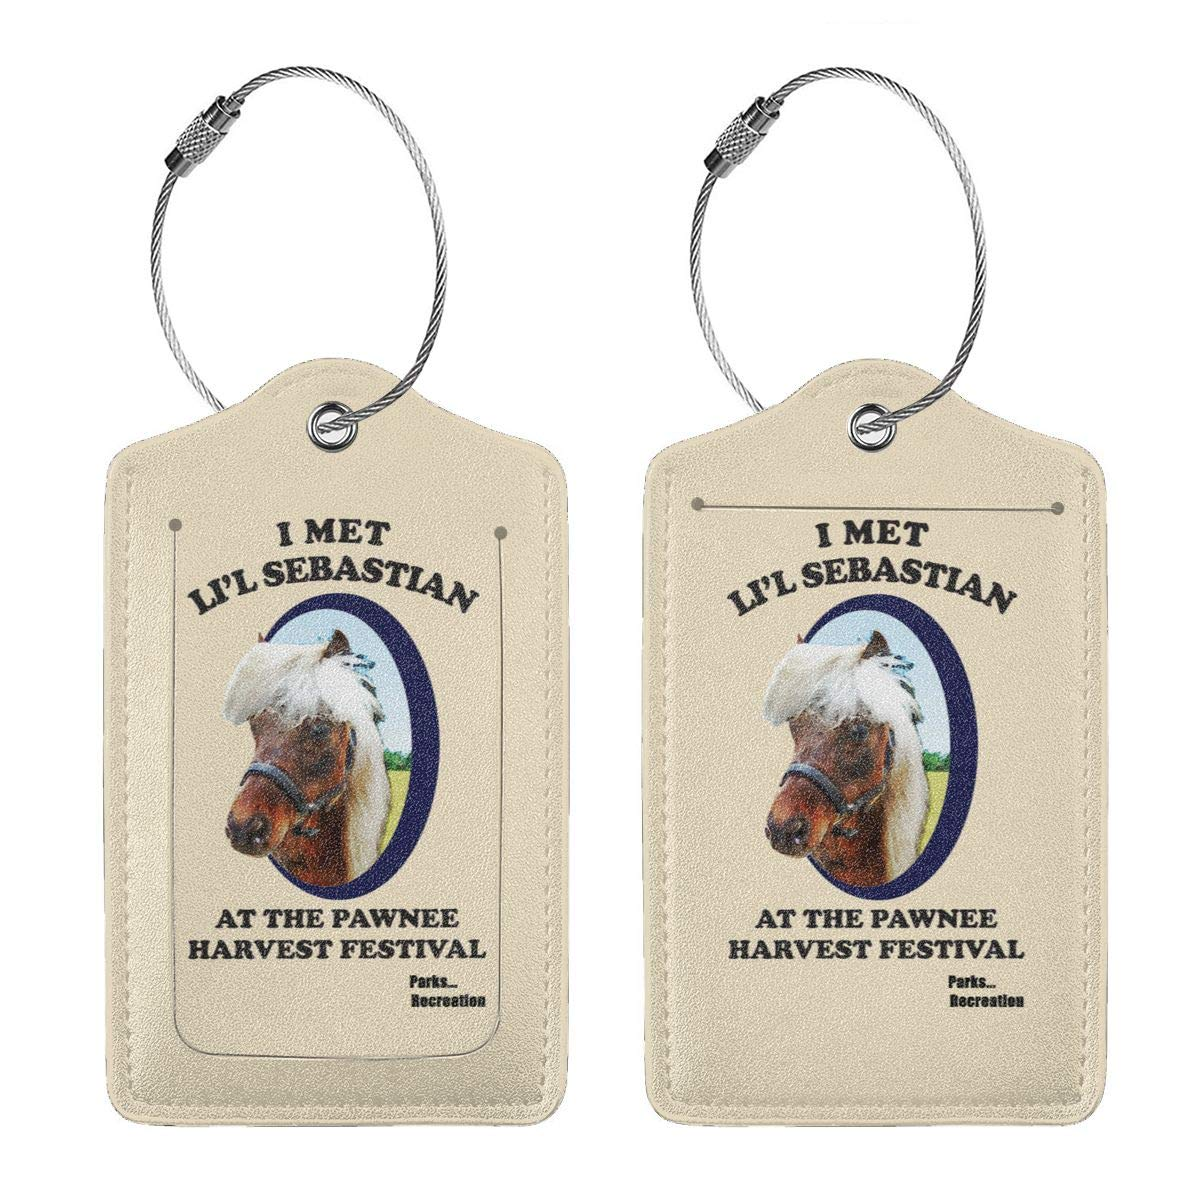 Parks Recreation Lil Sebastian Leather Luggage Tag Travel ID Label For Baggage Suitcase